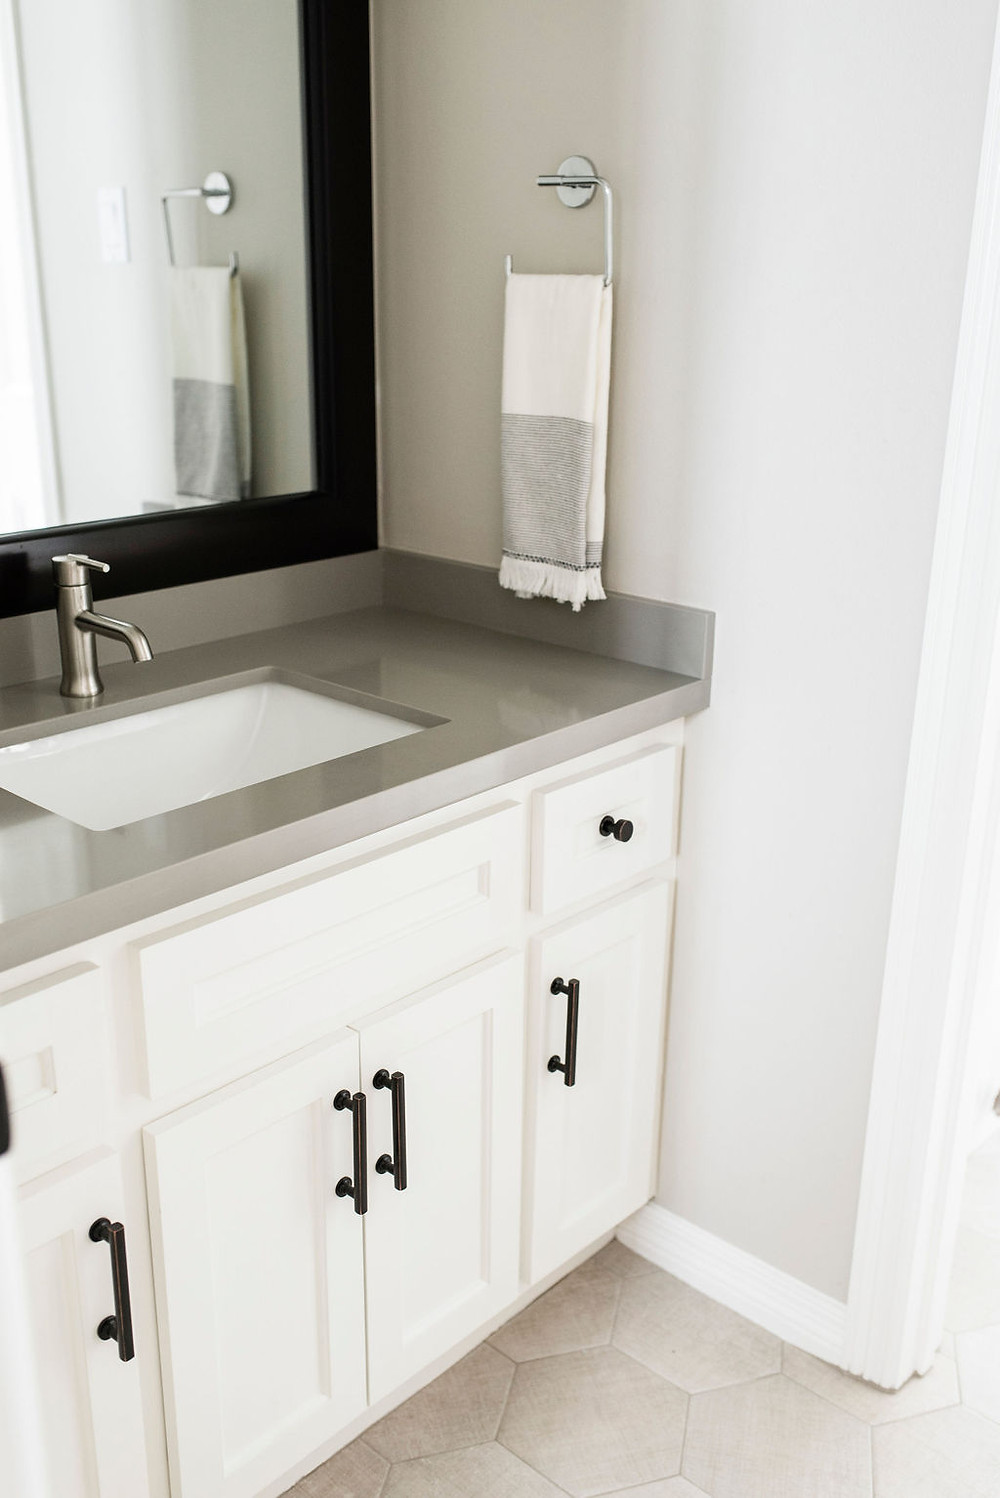 Modern transitional secondary bathroom project reveal featuring hexagonal floor tiles   by Houston interior design firm Nancy Lane Interiors.